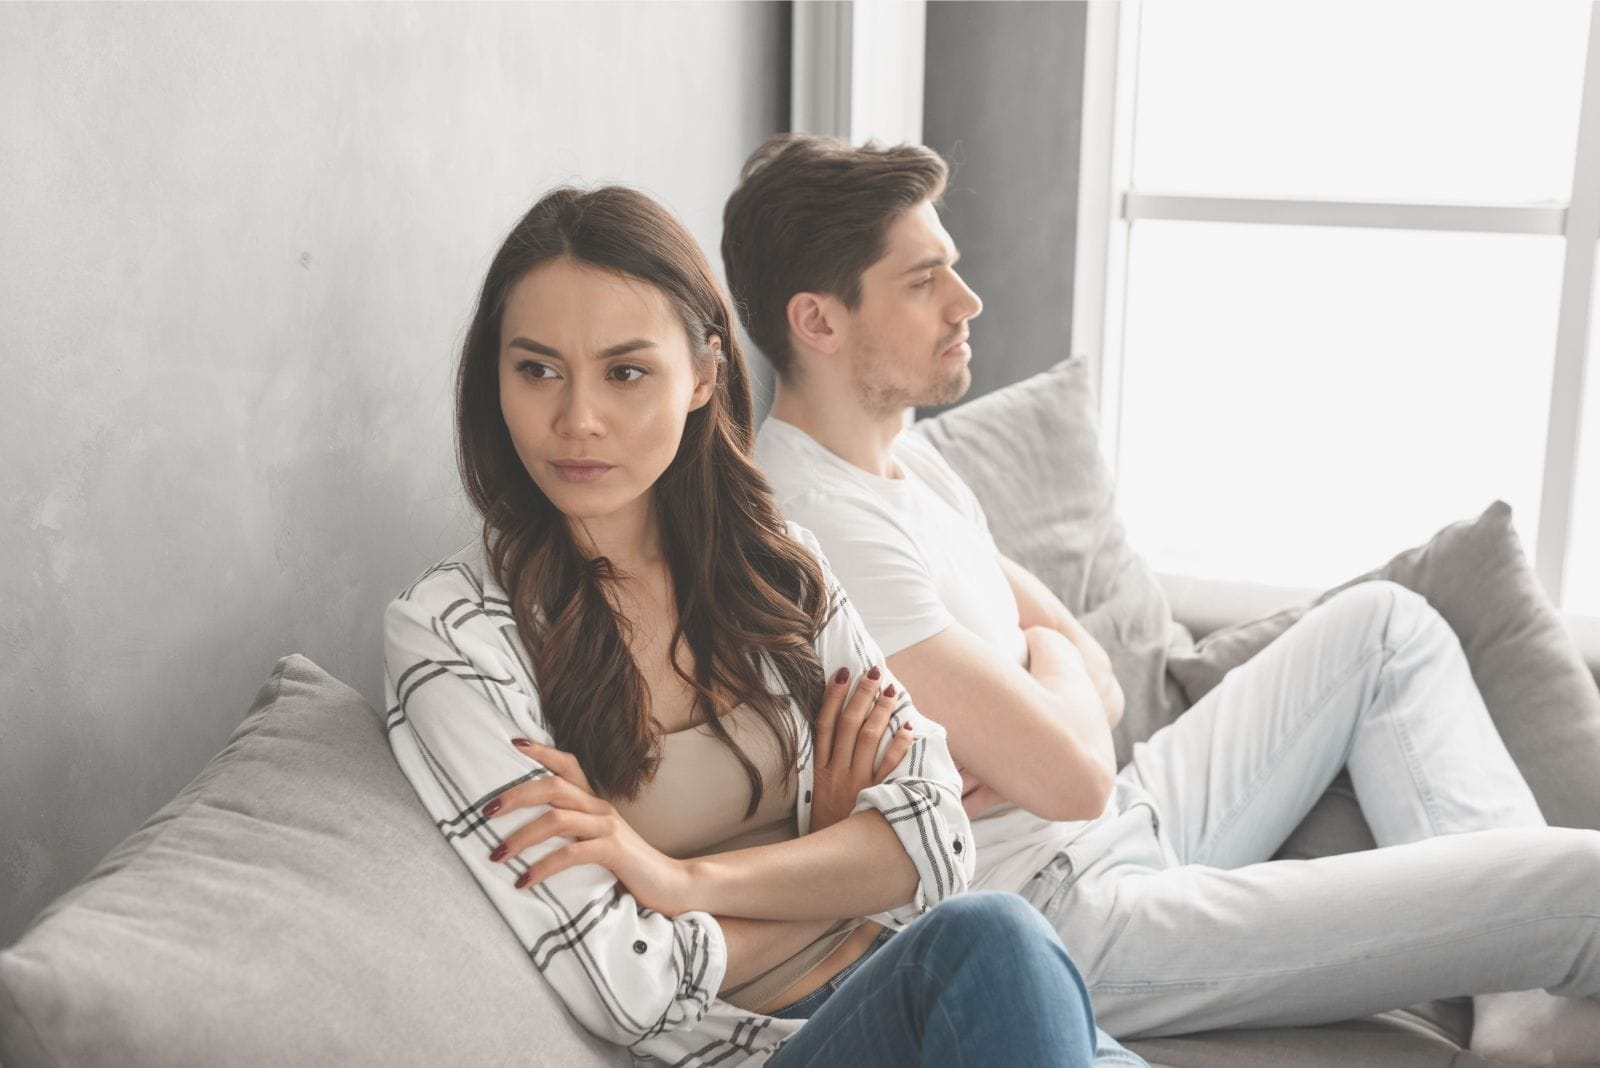 resentful woman sitting next to a guy after an argument